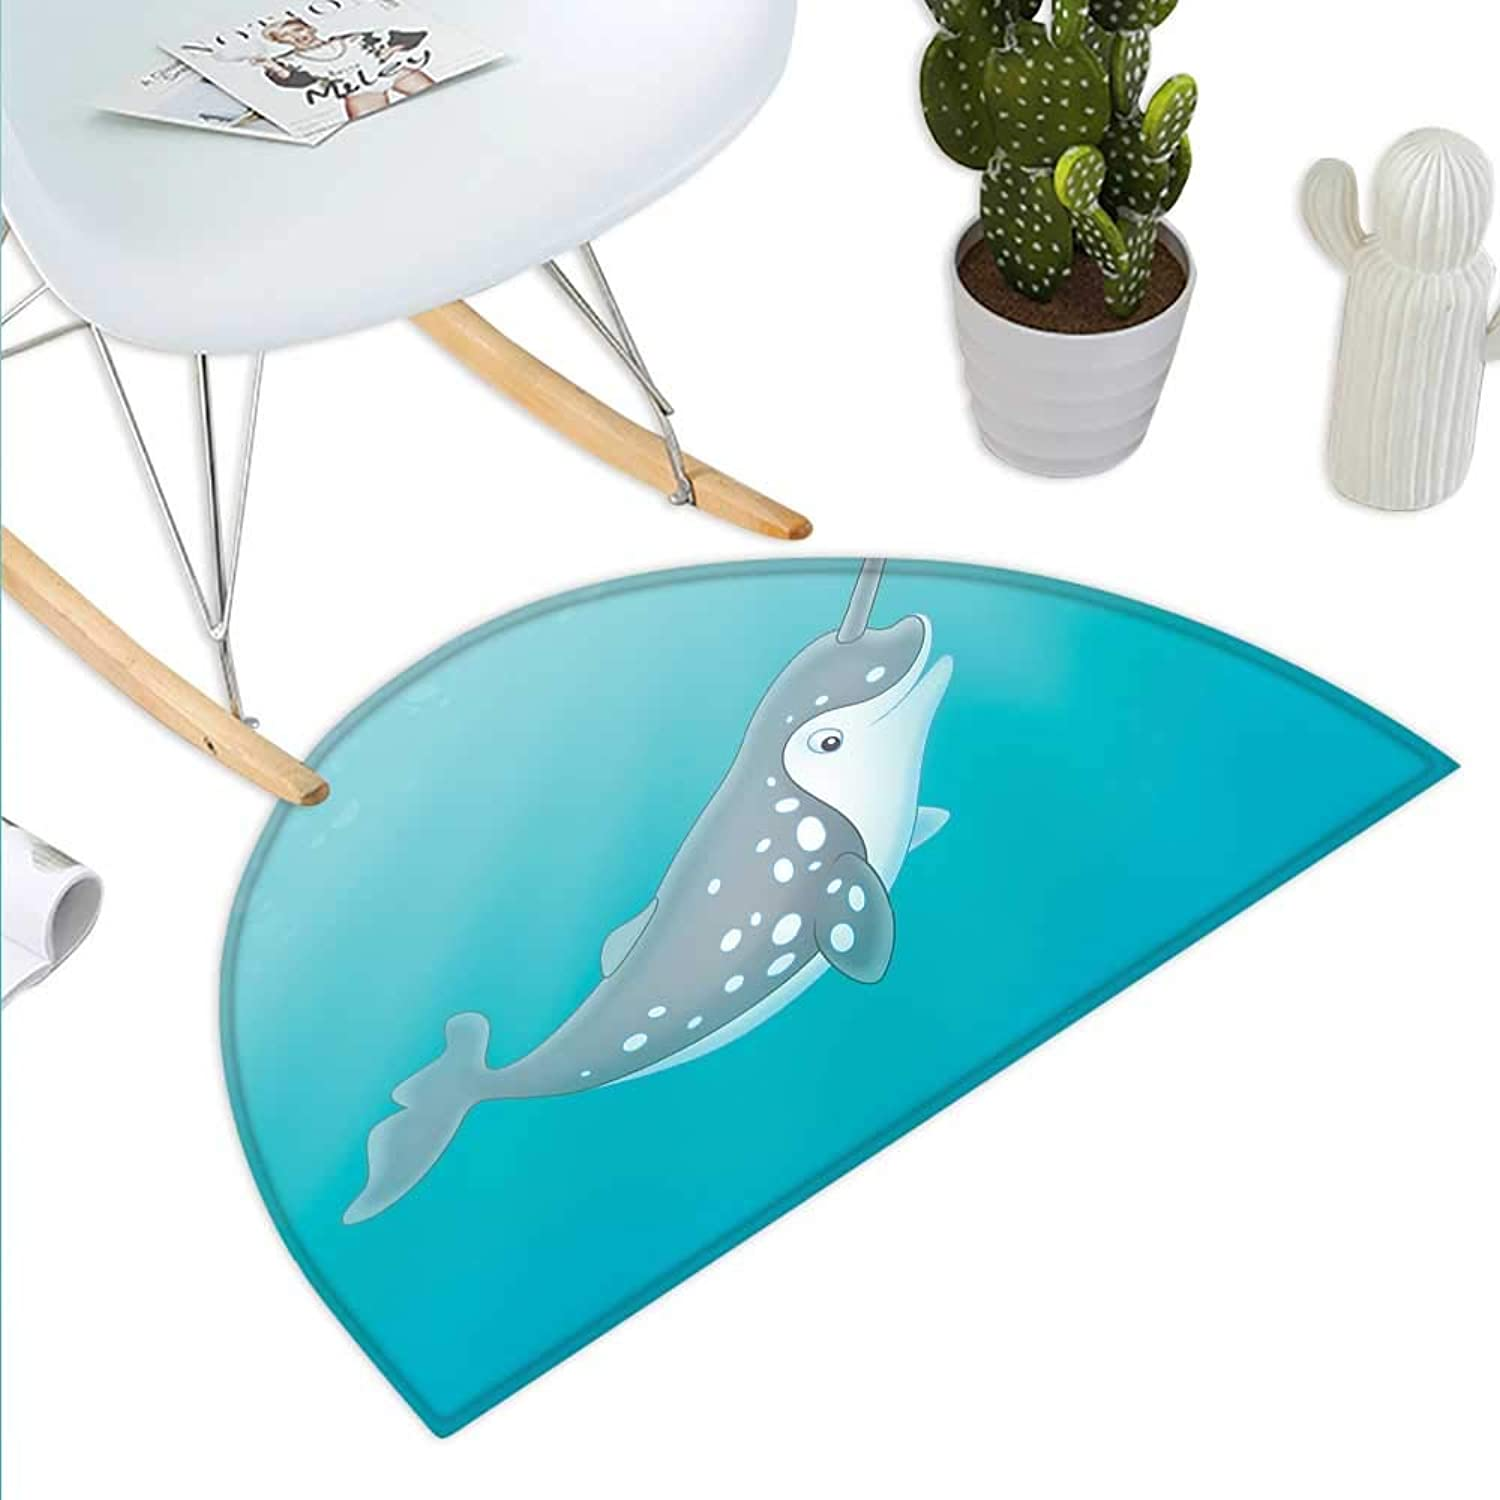 Narwhal Semicircle Doormat Cartoon Style Drawing of an Arctic Narwhal Whale with White Spots Aquatic Halfmoon doormats H 39.3  xD 59  Seafoam Grey White